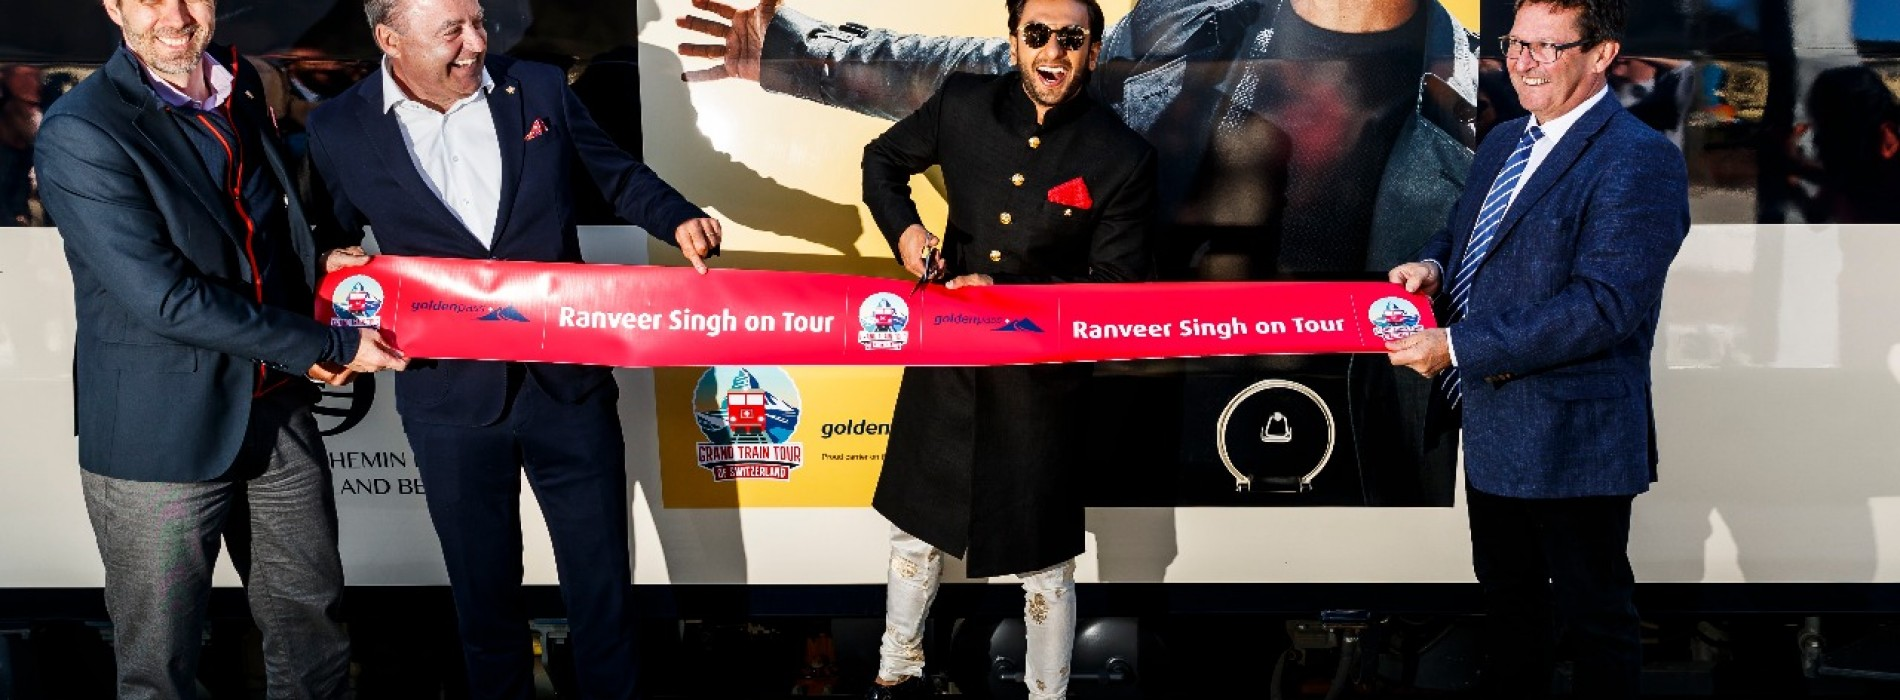 The 'Ranveer on Tour' Golden Pass Line Train takes off in Switzerland